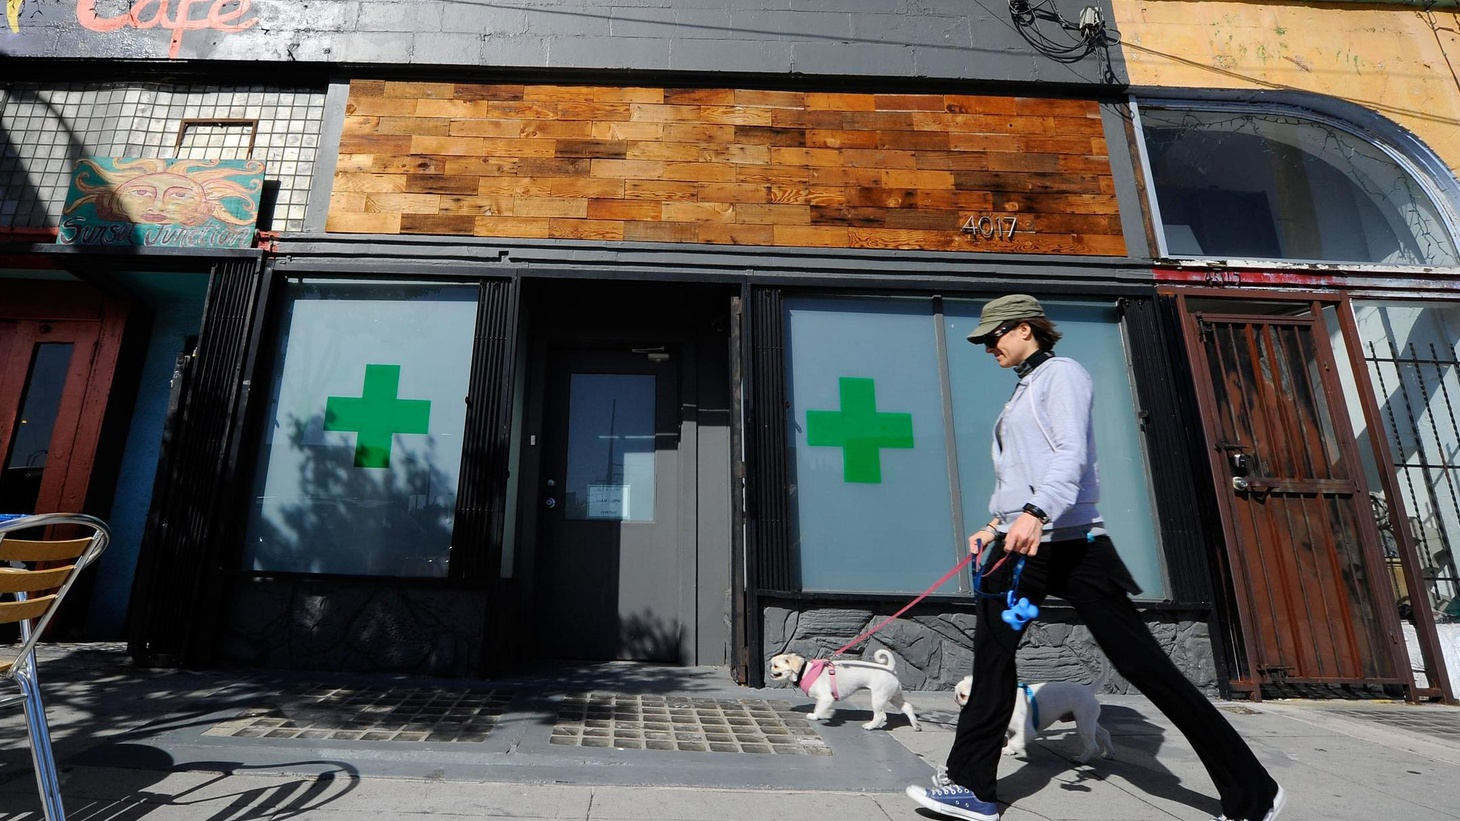 Conflicting court decisions have muddied the law on medical marijuana dispensaries, but the LA City Attorney is filing suit against those that are too close to schools.